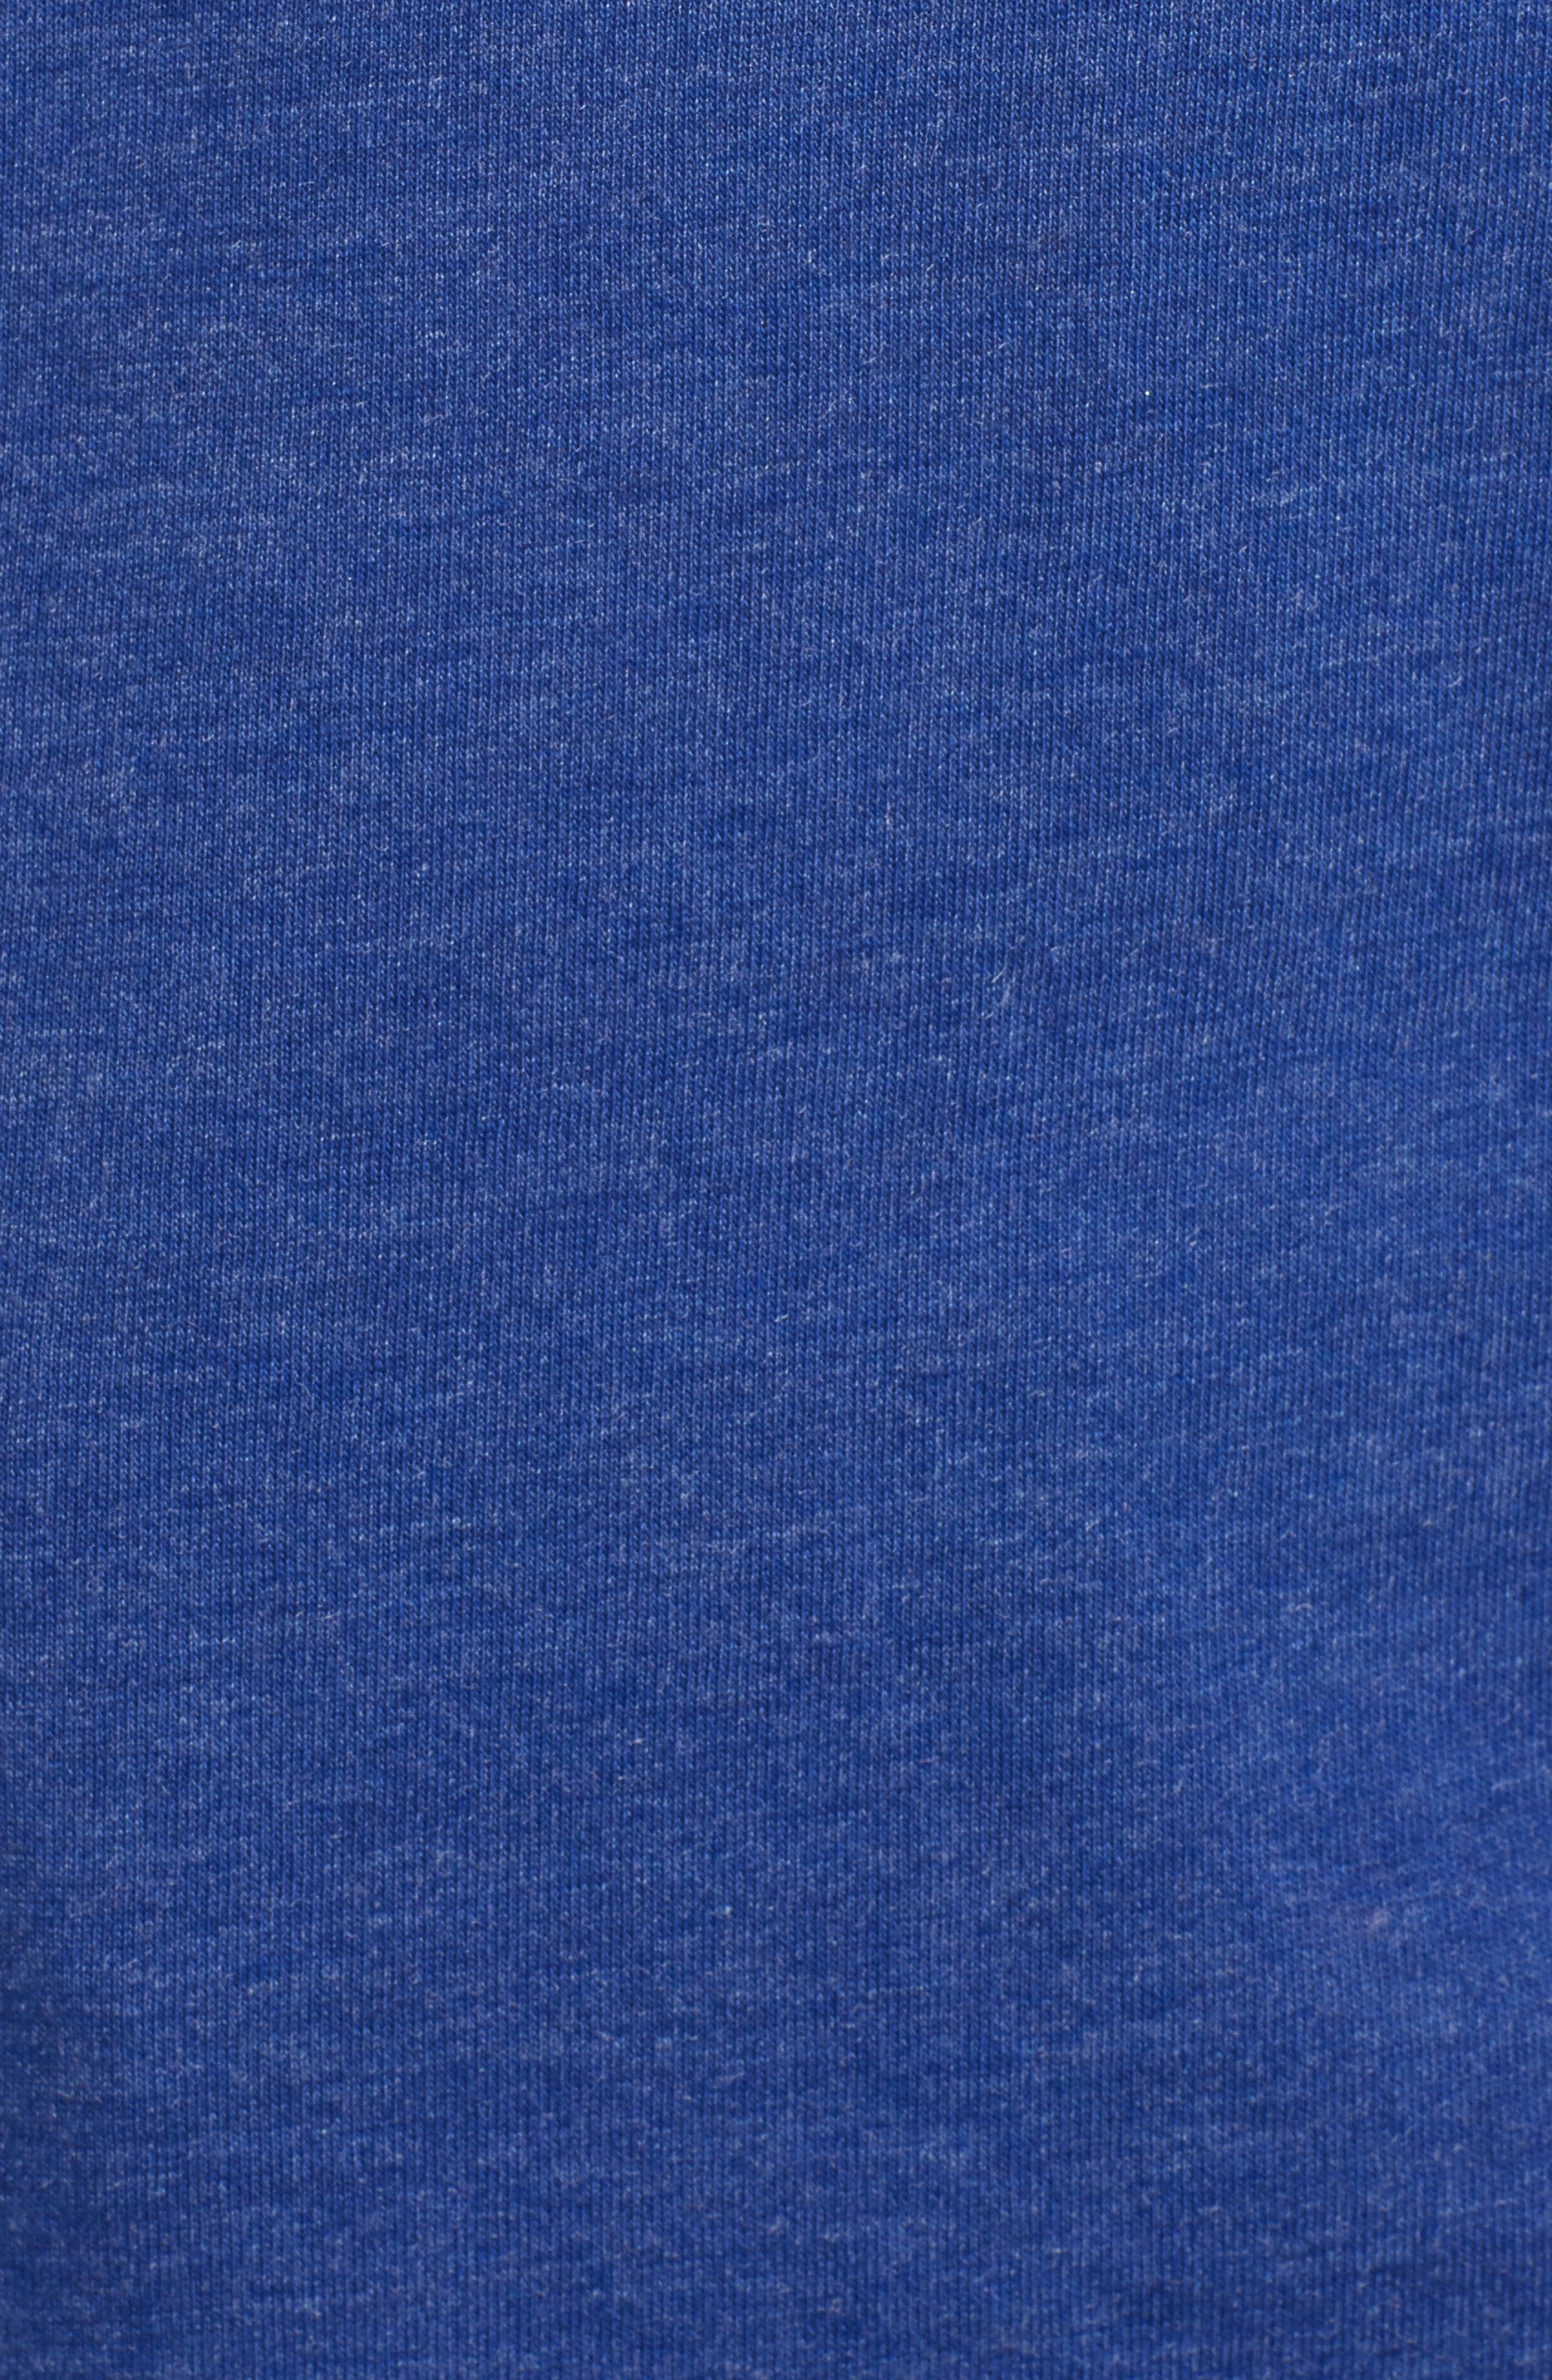 Chicago Cubs Too Good Tee,                             Alternate thumbnail 6, color,                             400